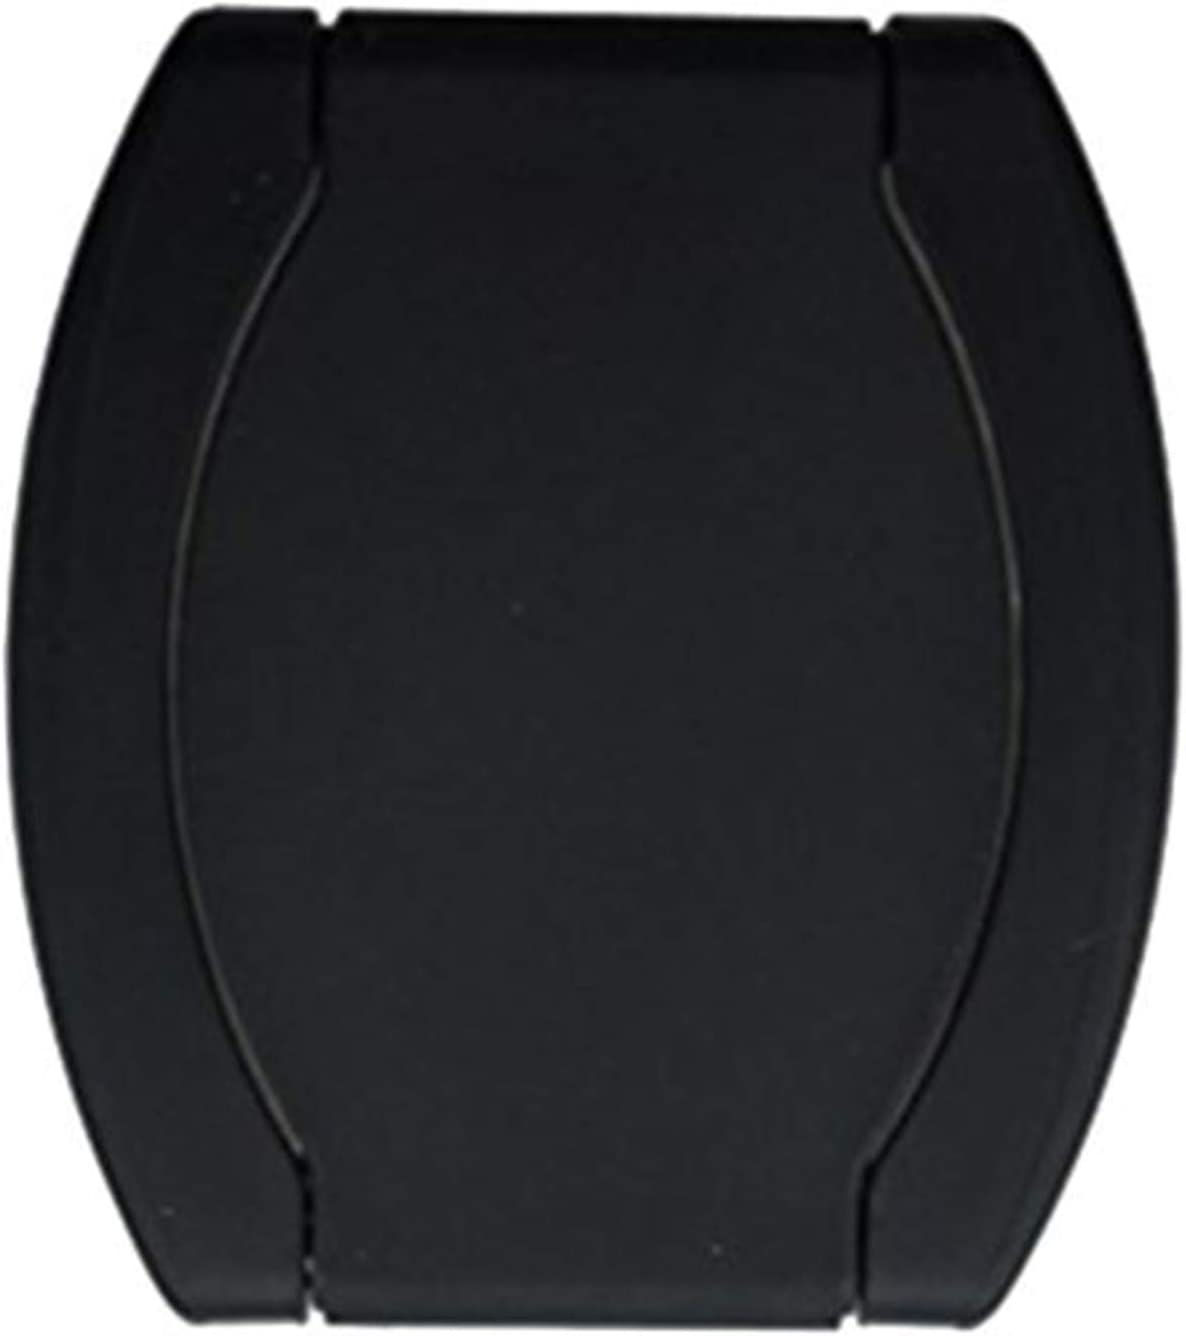 Privacy Shutter Lens Cap Hood Protective Cover for Logitech HD Pro ...